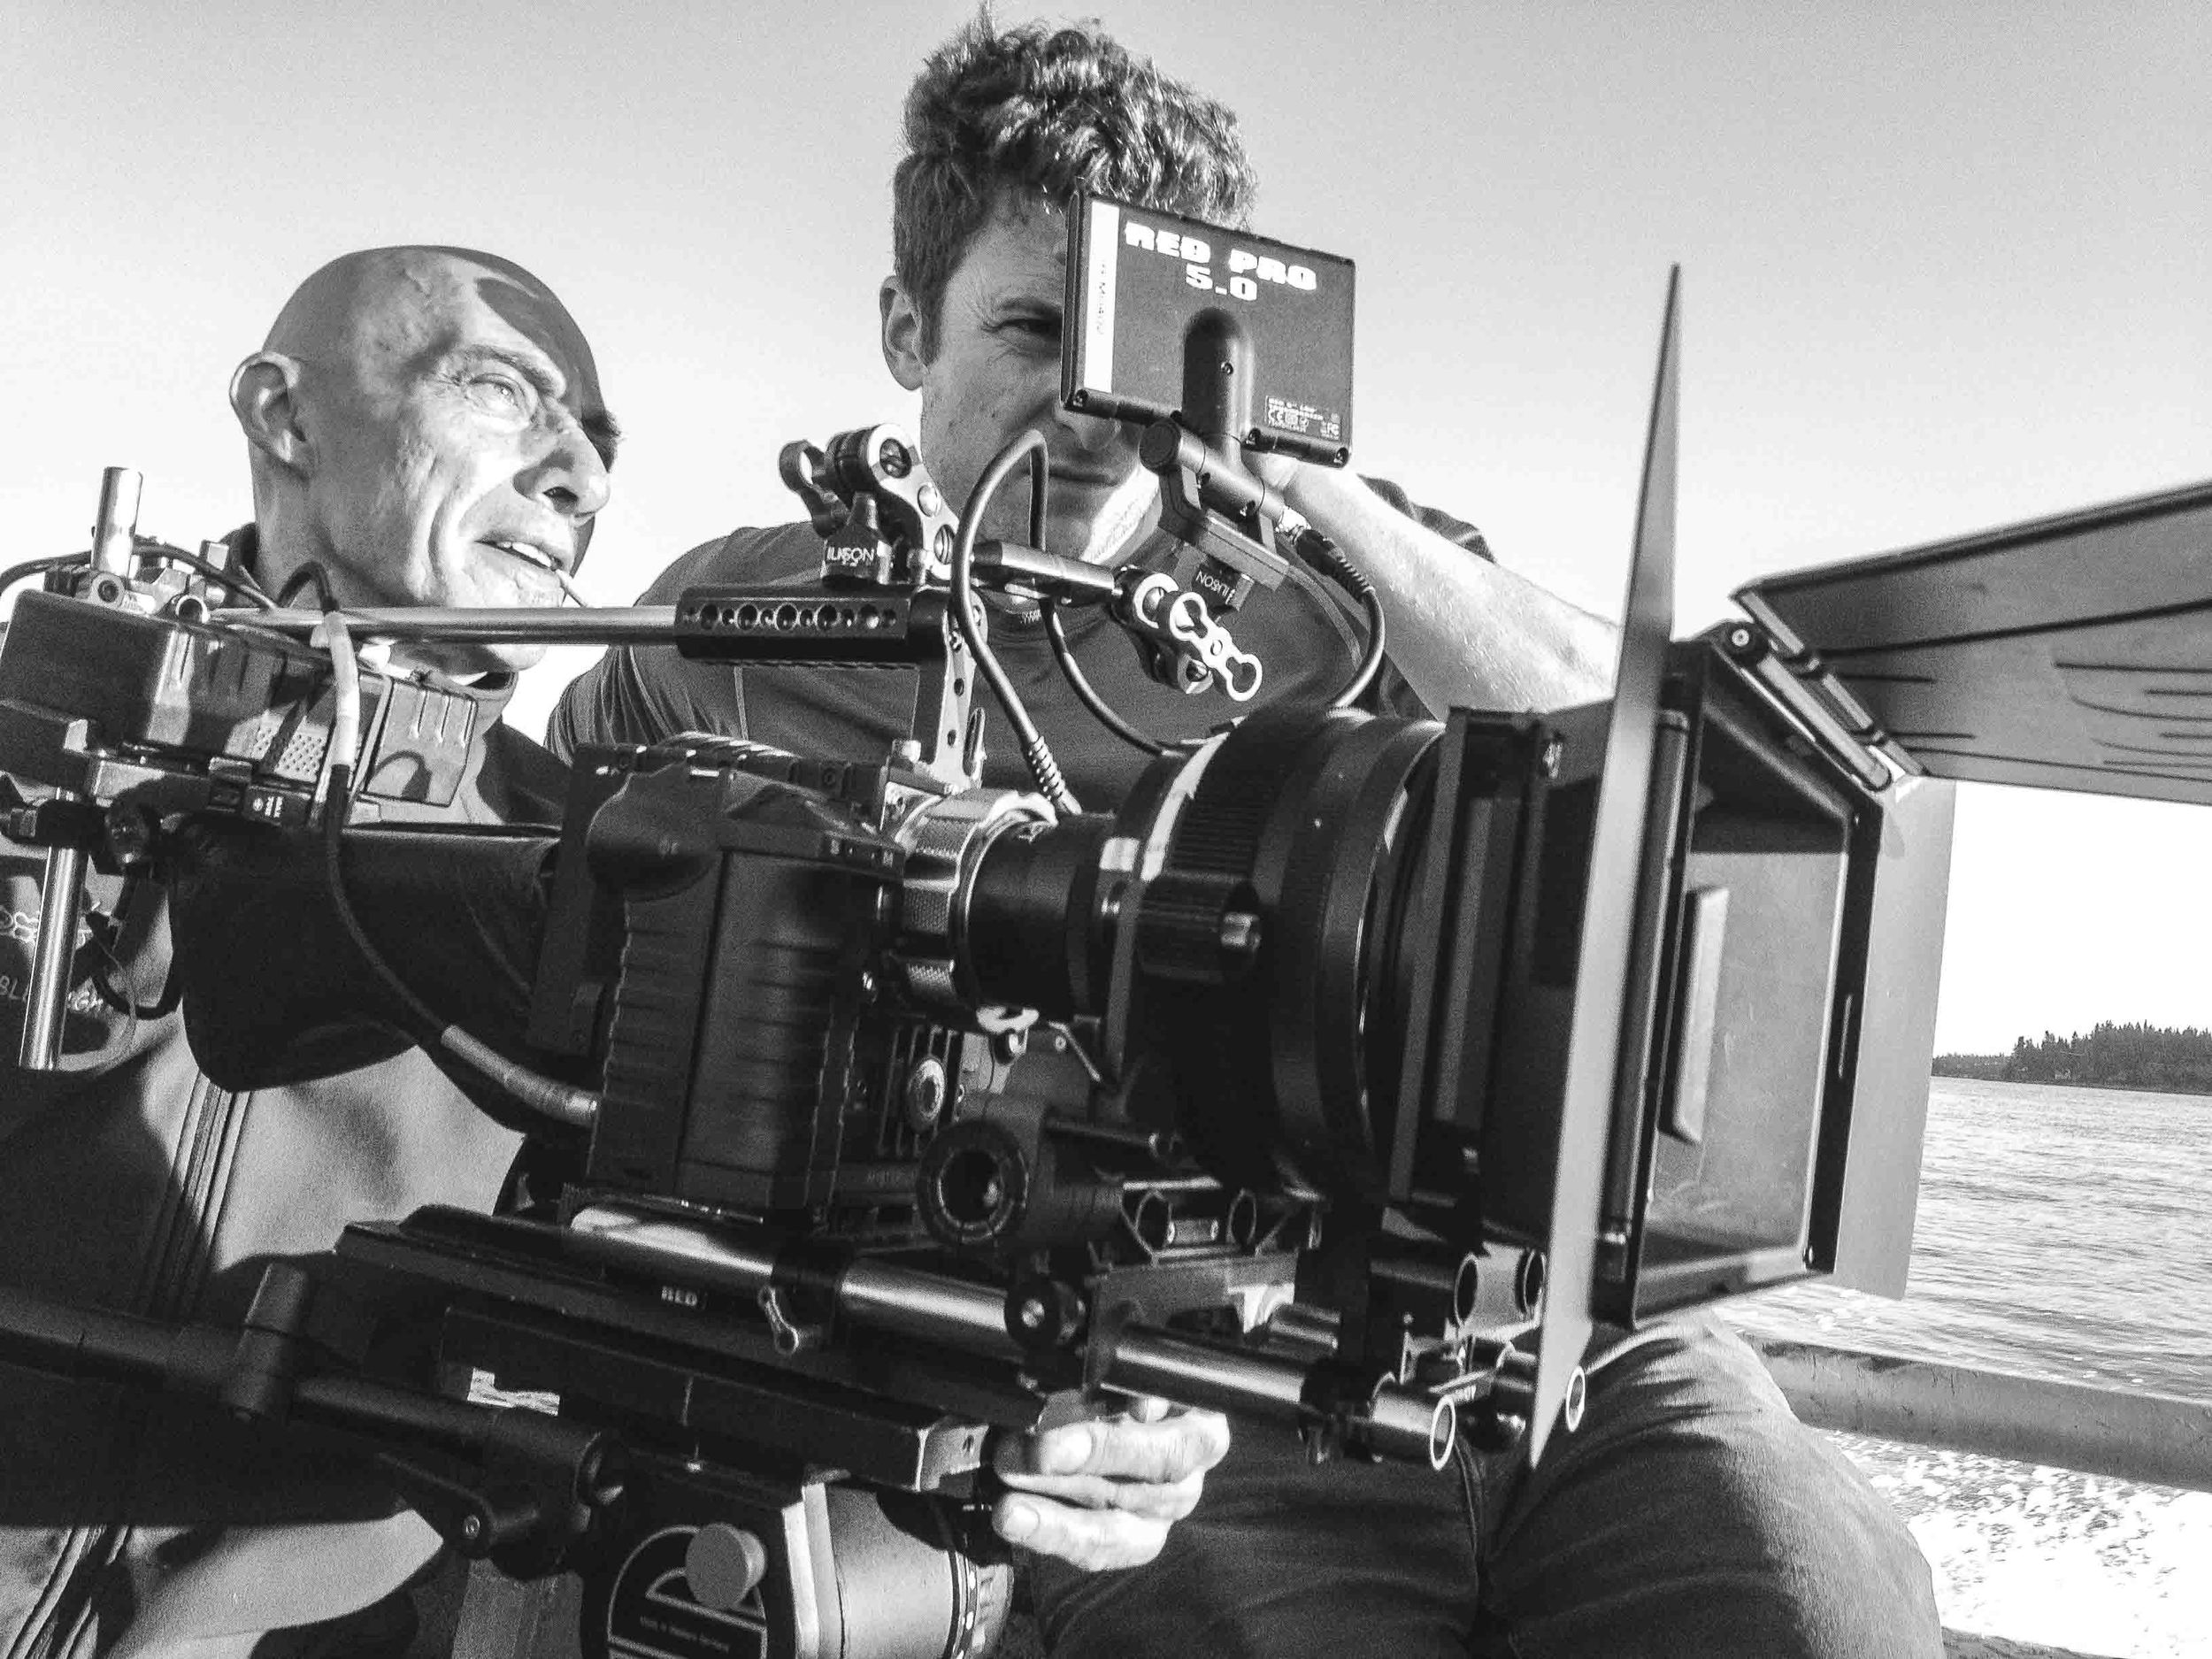 Cinematographer Ray Flynn and Cinematographer/Producer Nick Hall